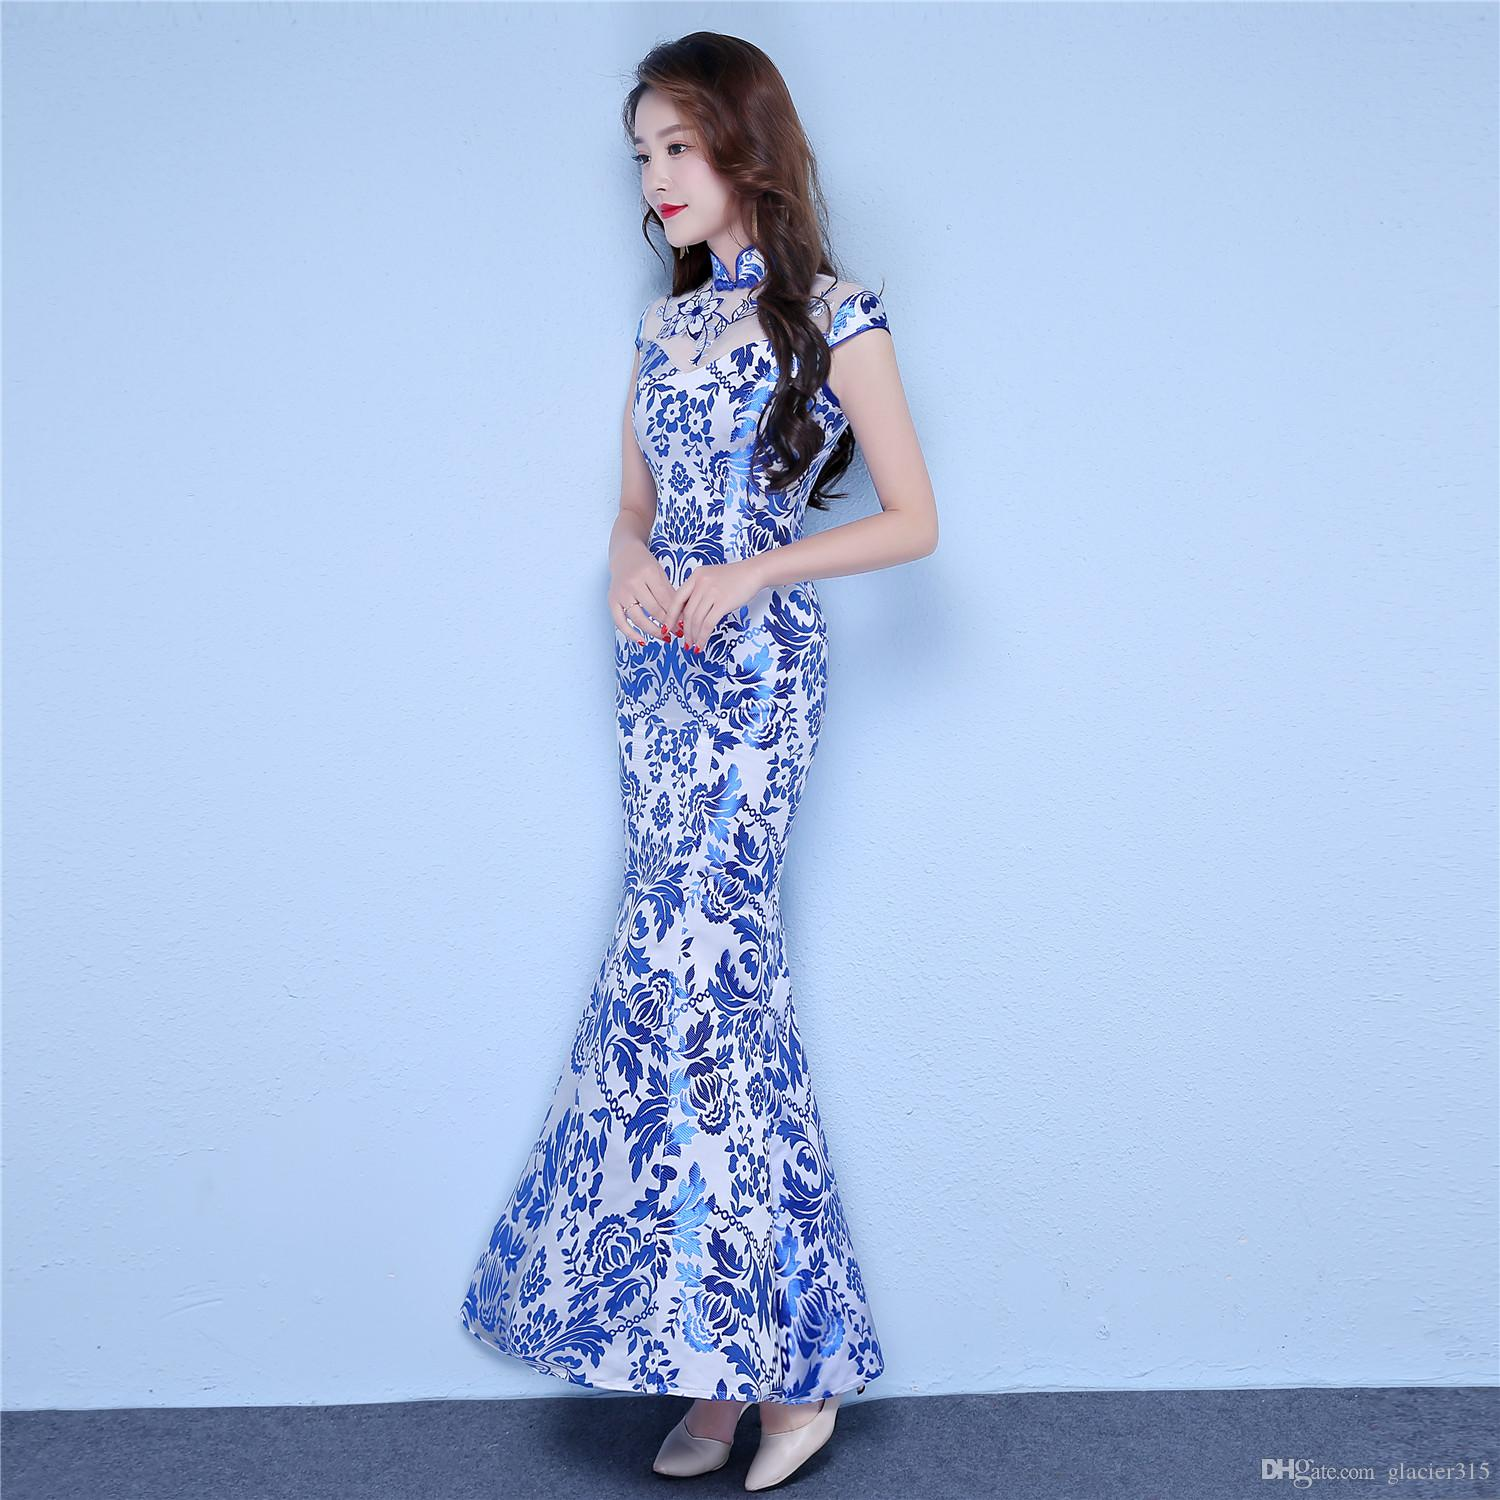 Shanghai Story Chinese Style Dress Long Qipao Short Sleeve Faux Silk blue and white porcelain dress Mermaid Cheongsam dress for Women